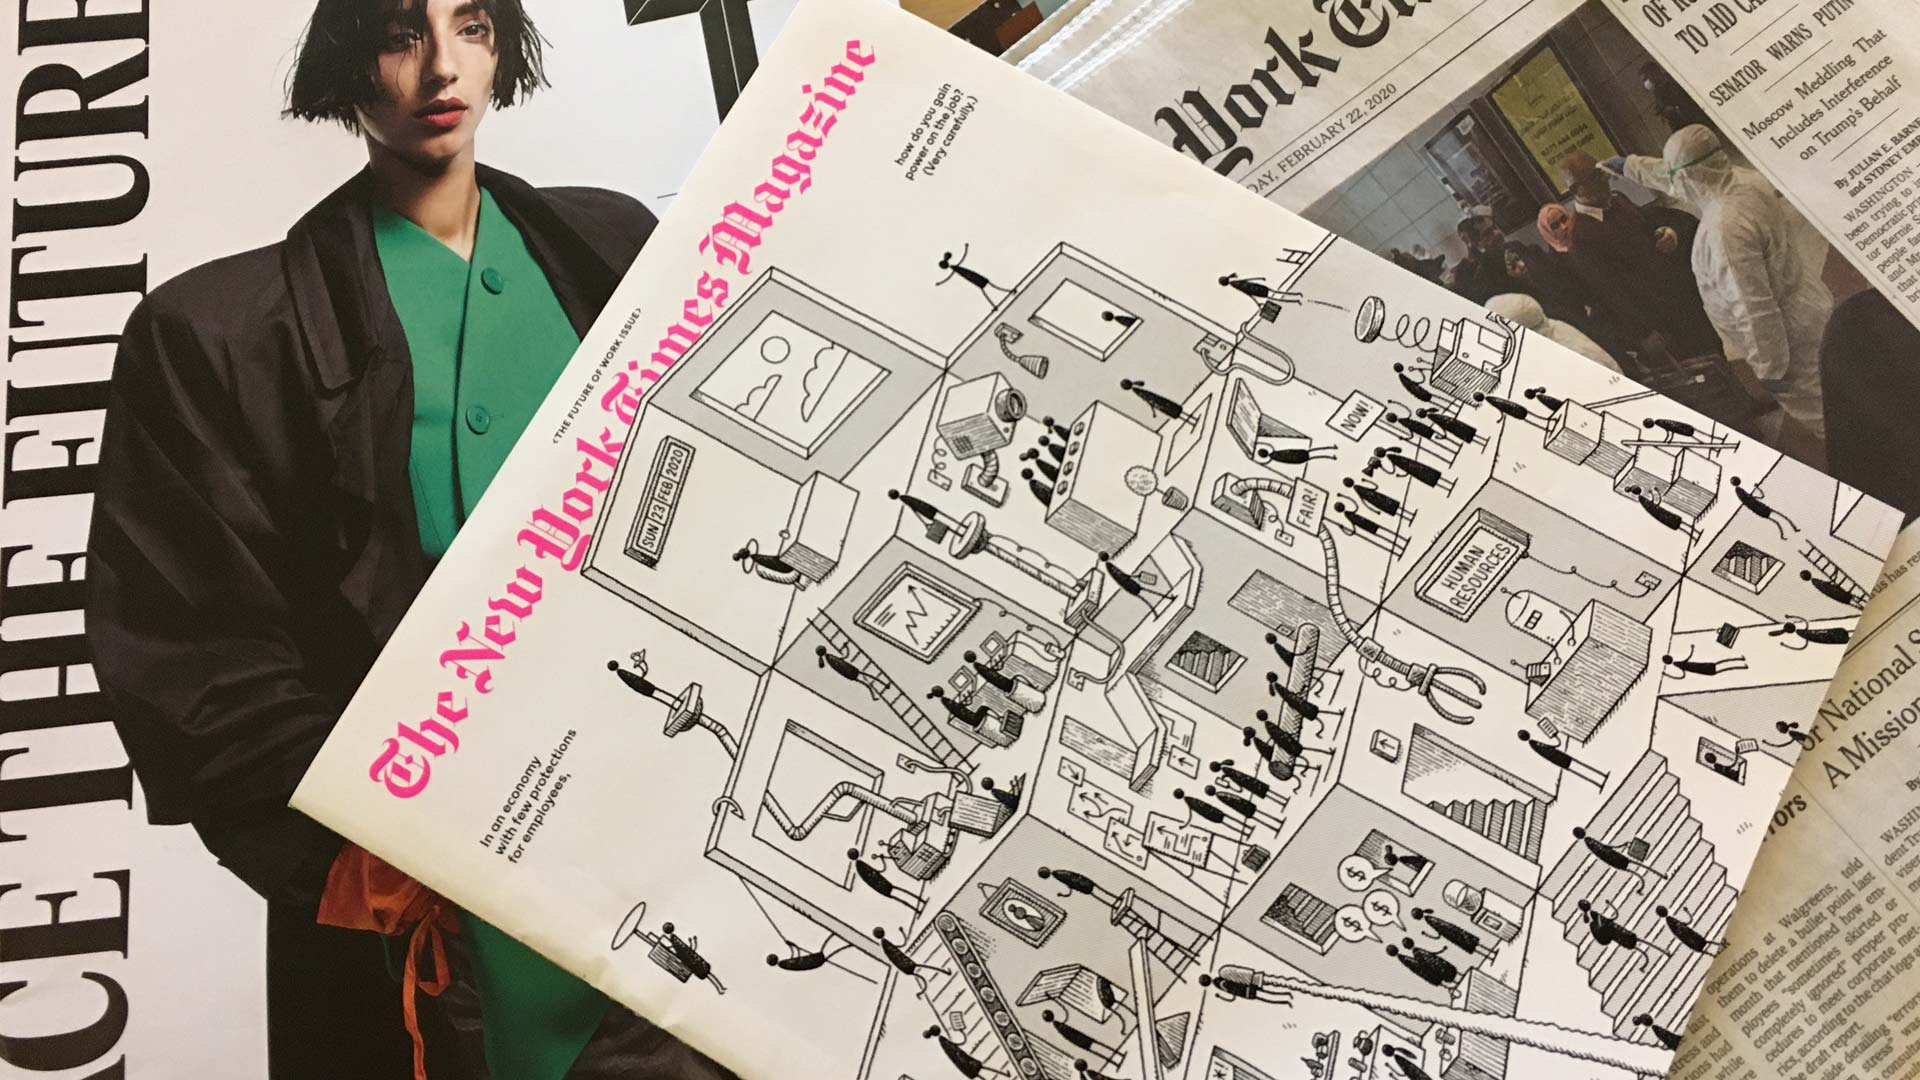 New York Times magazine and fashion section